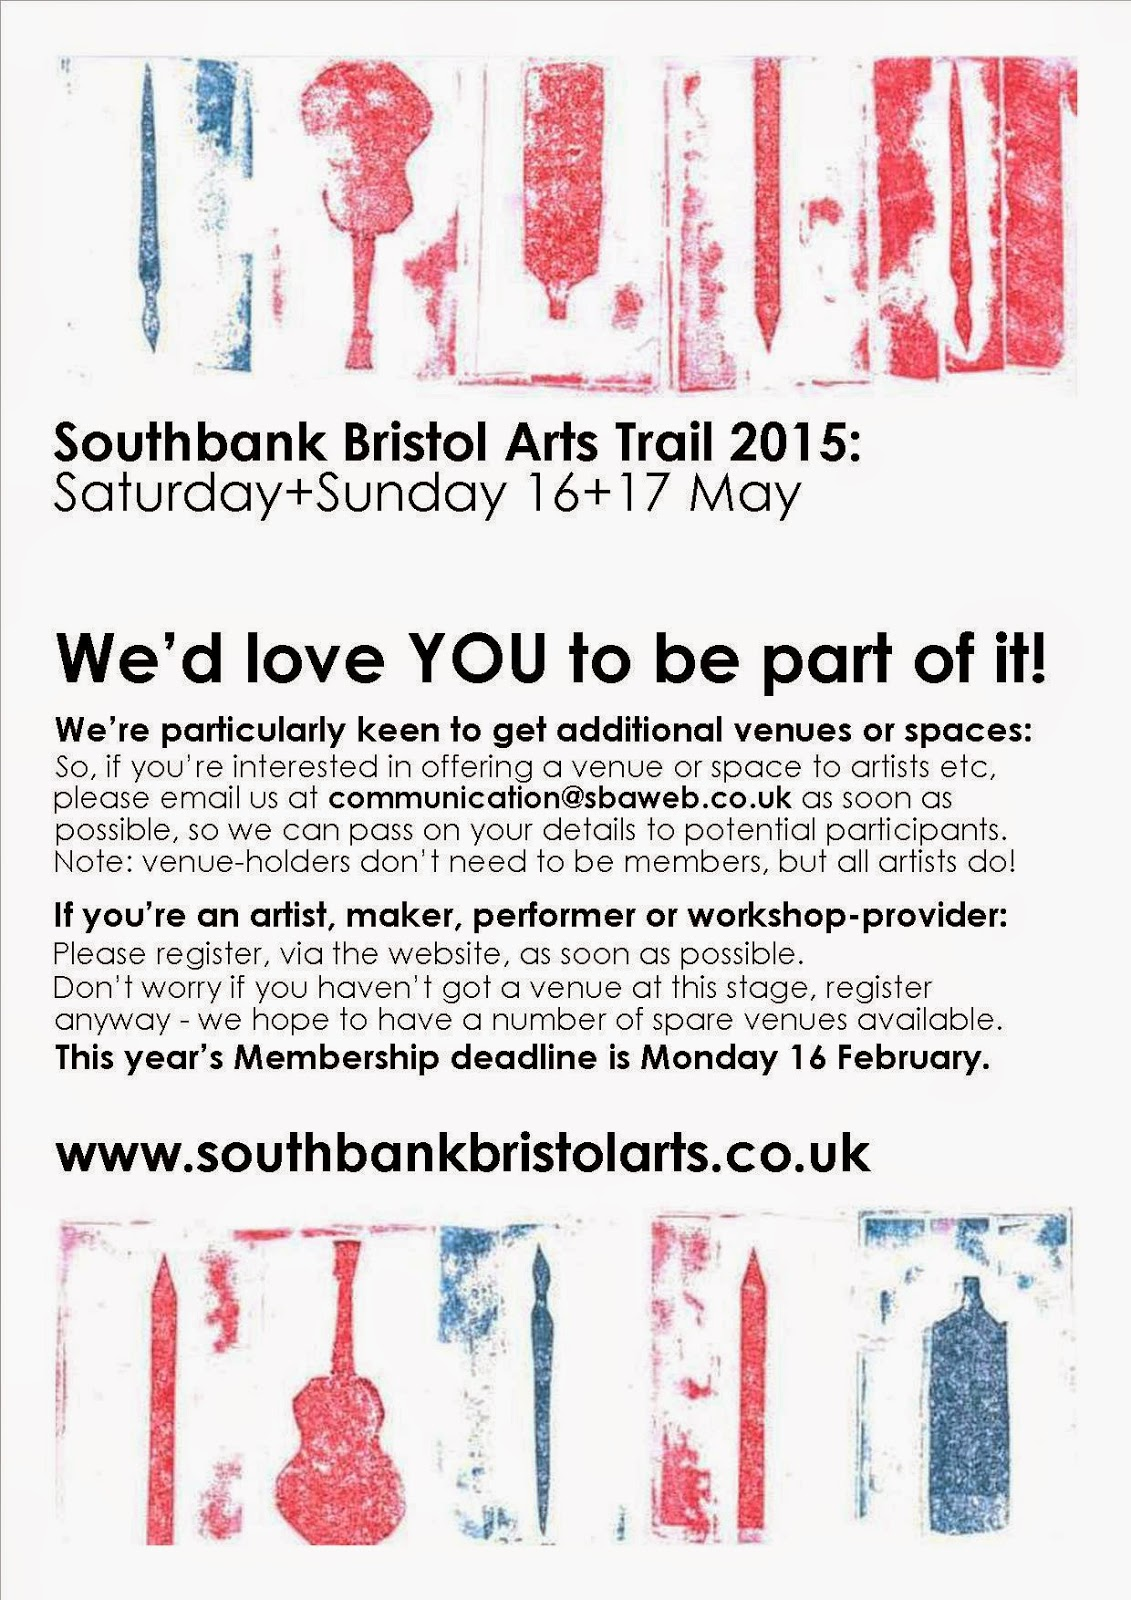 http://www.southbankbristolarts.co.uk/join